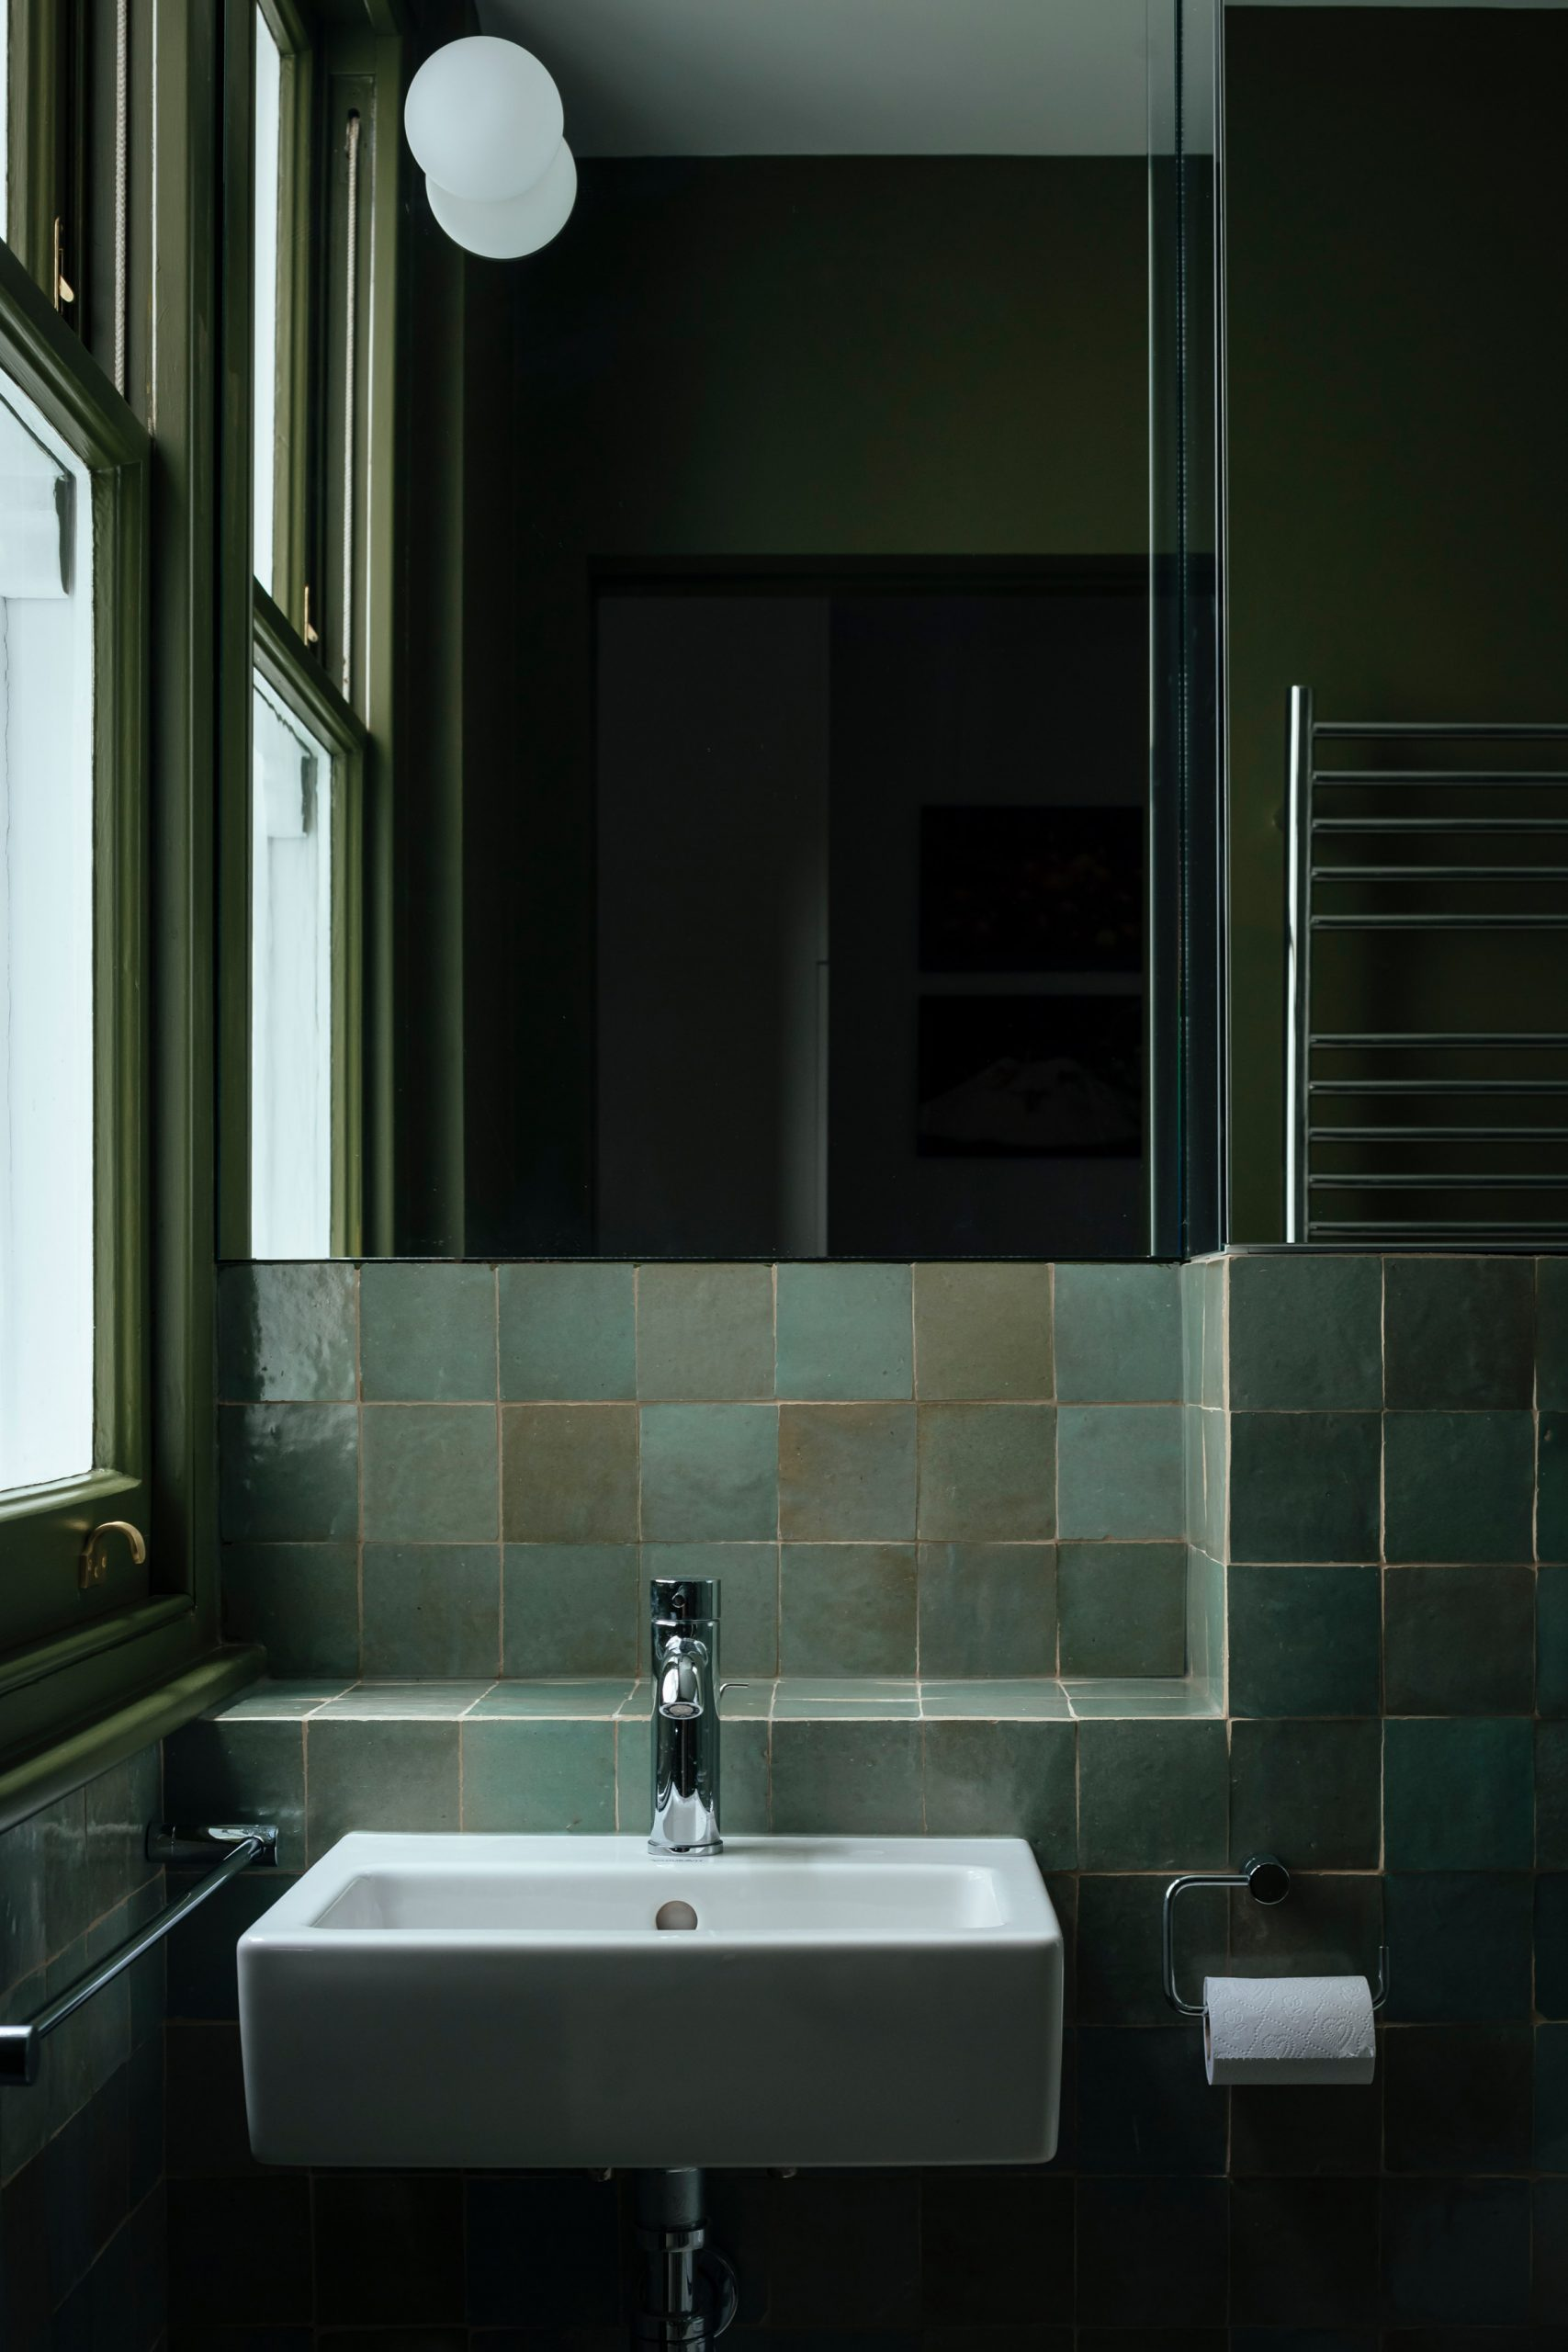 Green-tiled bathroom in Unearthed vault apartment